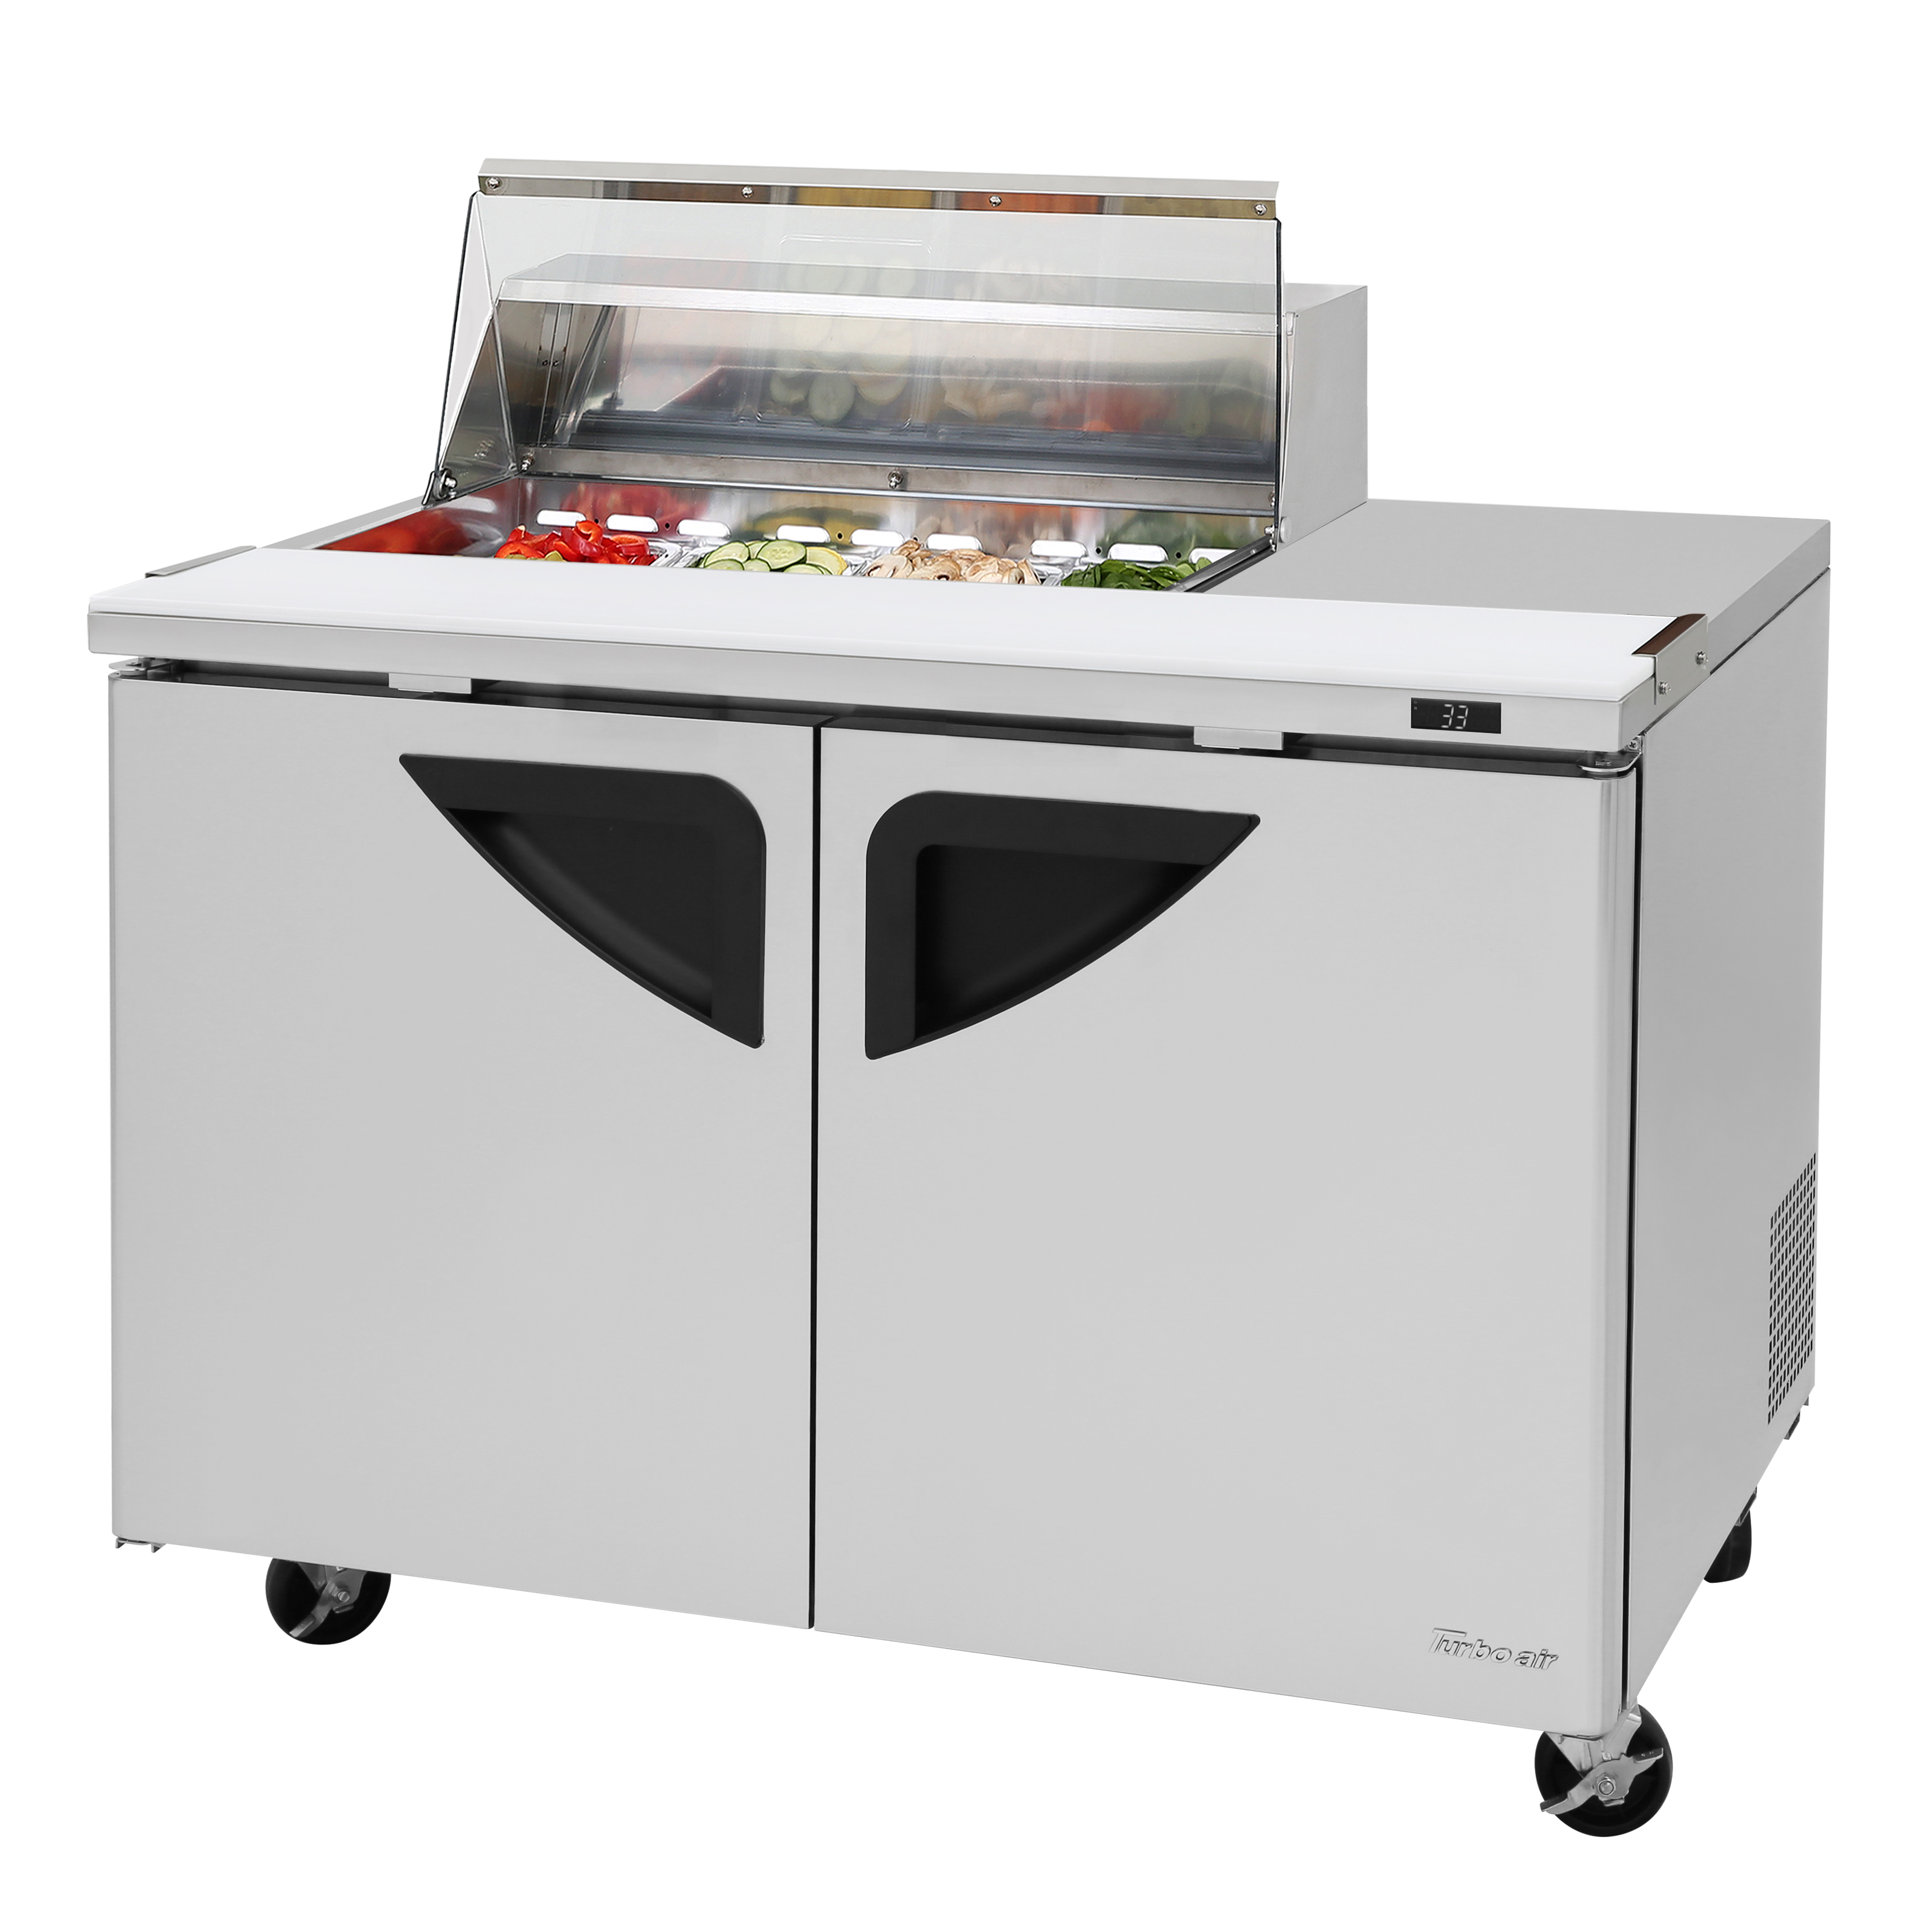 Turbo Air TST-48SD-08S-N-CL refrigerated counter, sandwich / salad unit